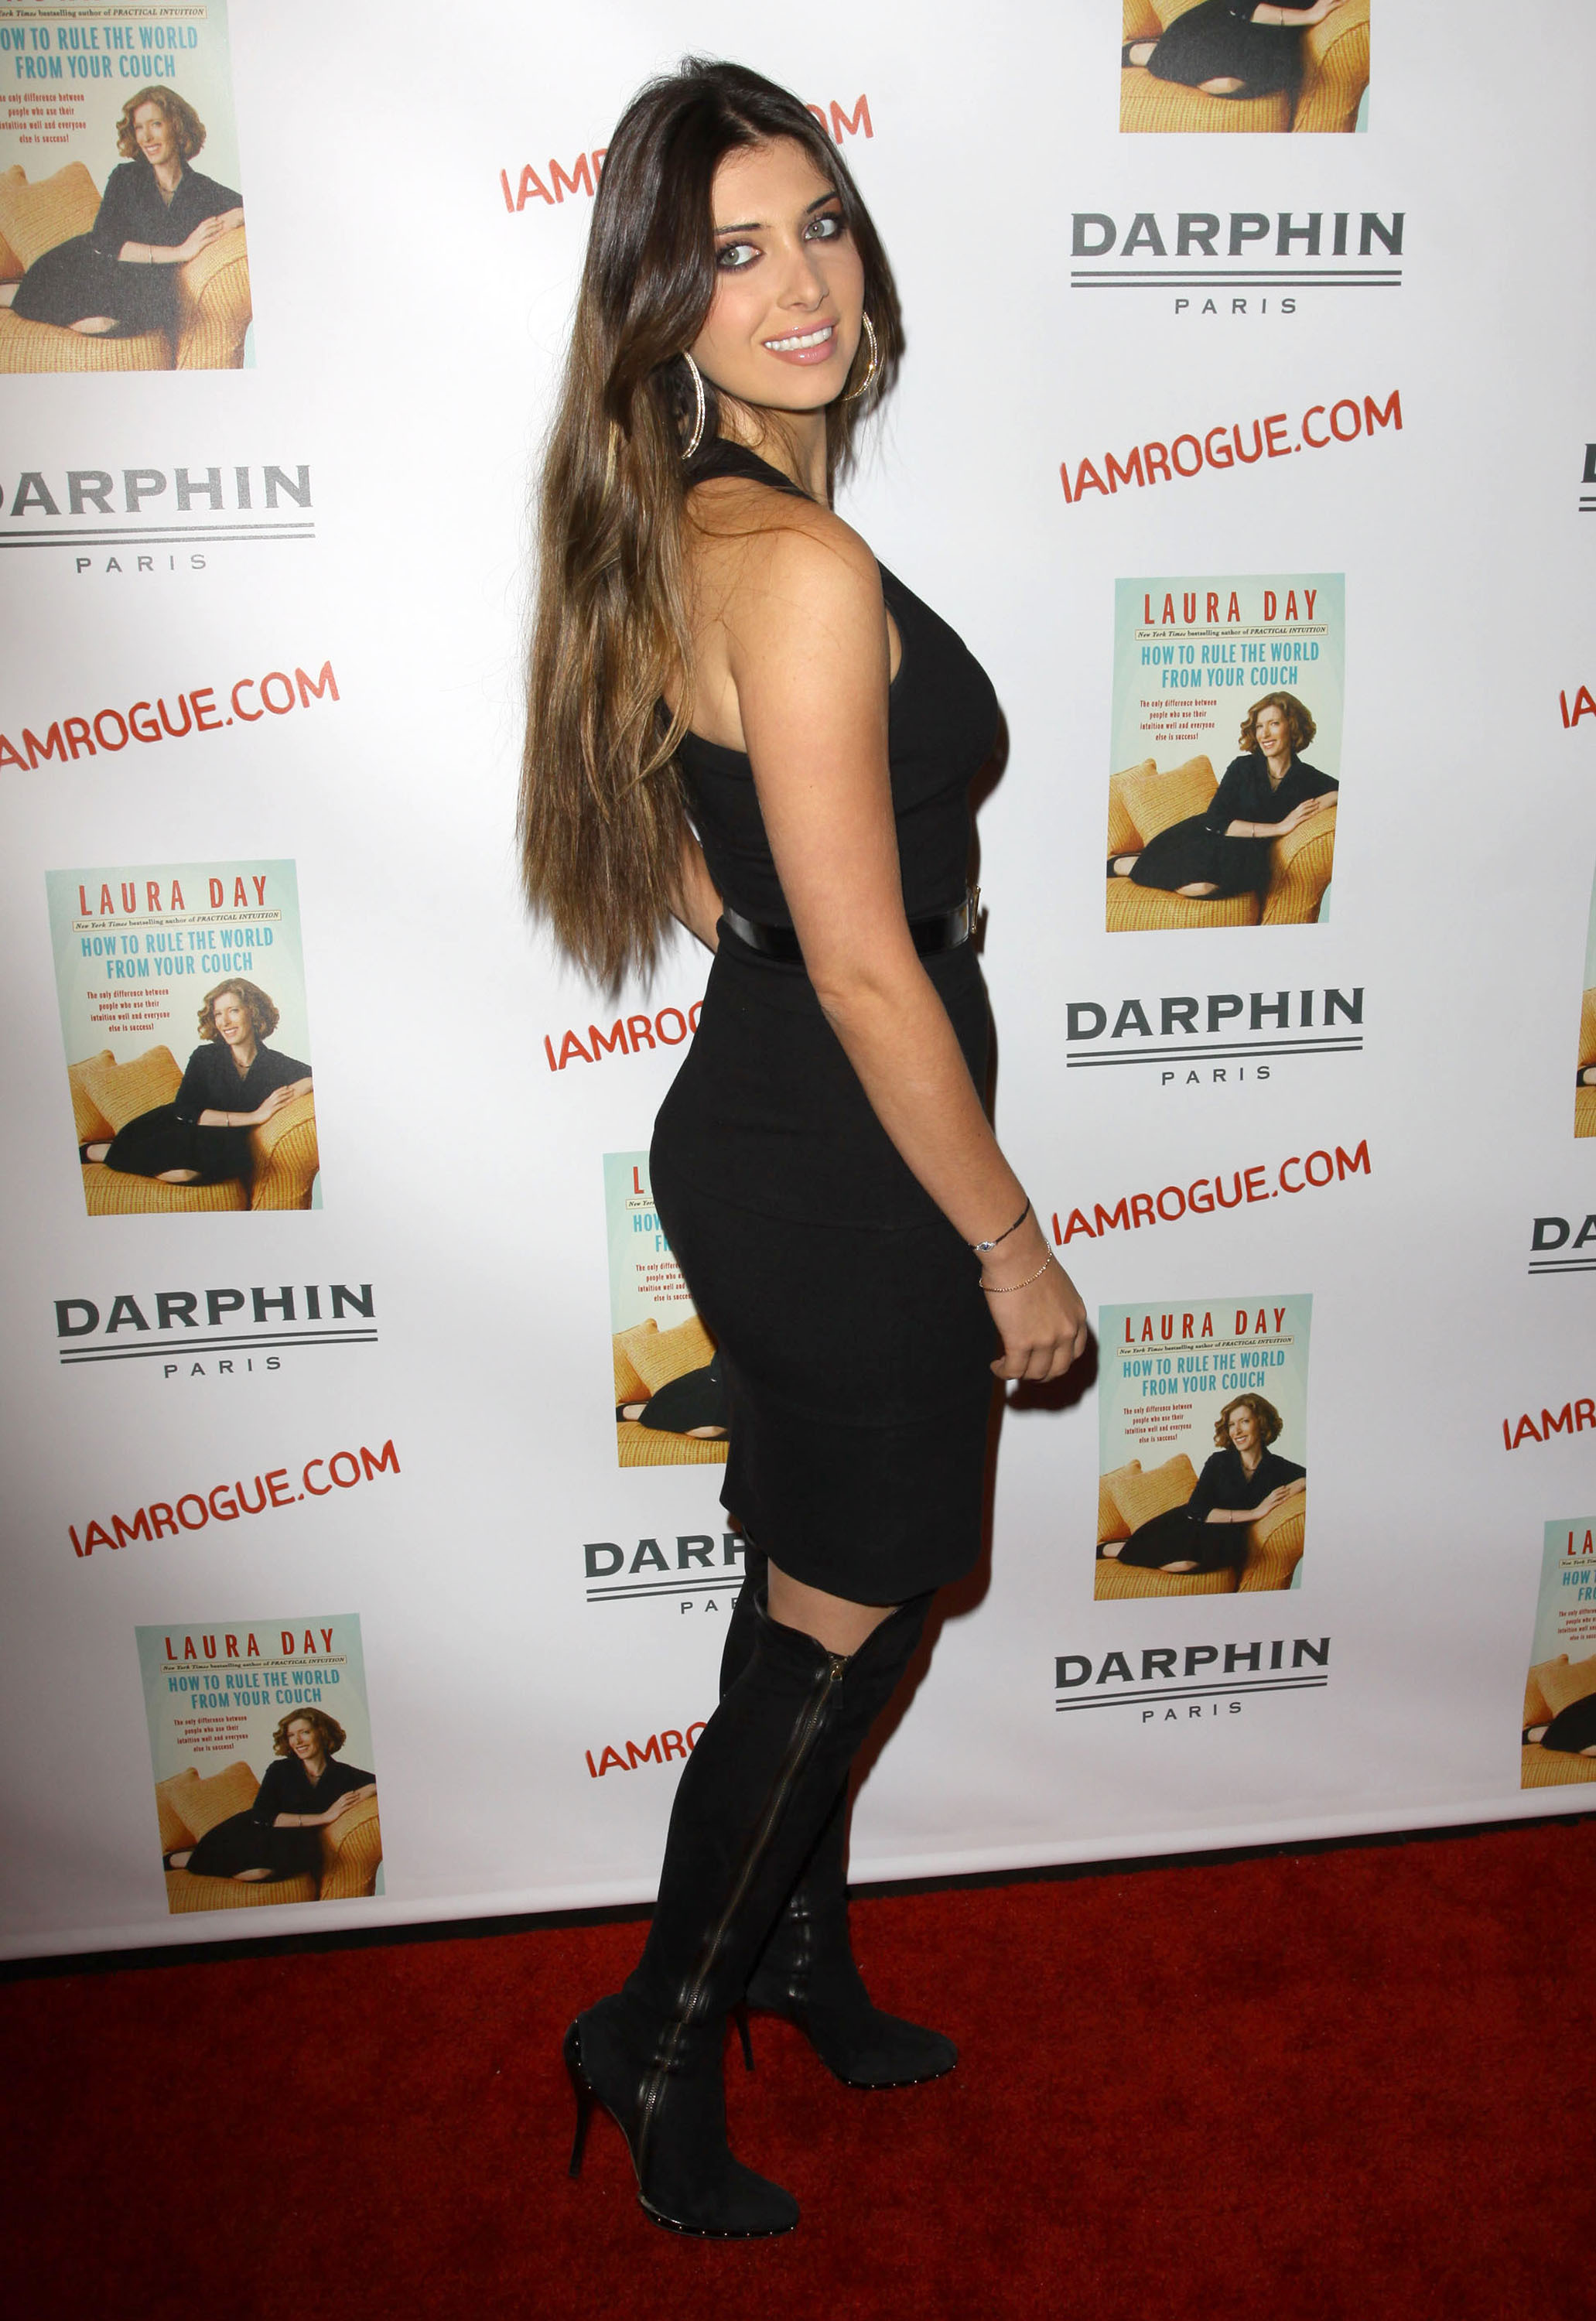 02399_celebrity-paradise.com-The_Elder-Brittny_Gastineau_2009-10-19_-_Book_Party_For_Laura_Day_451_122_81lo.jpg